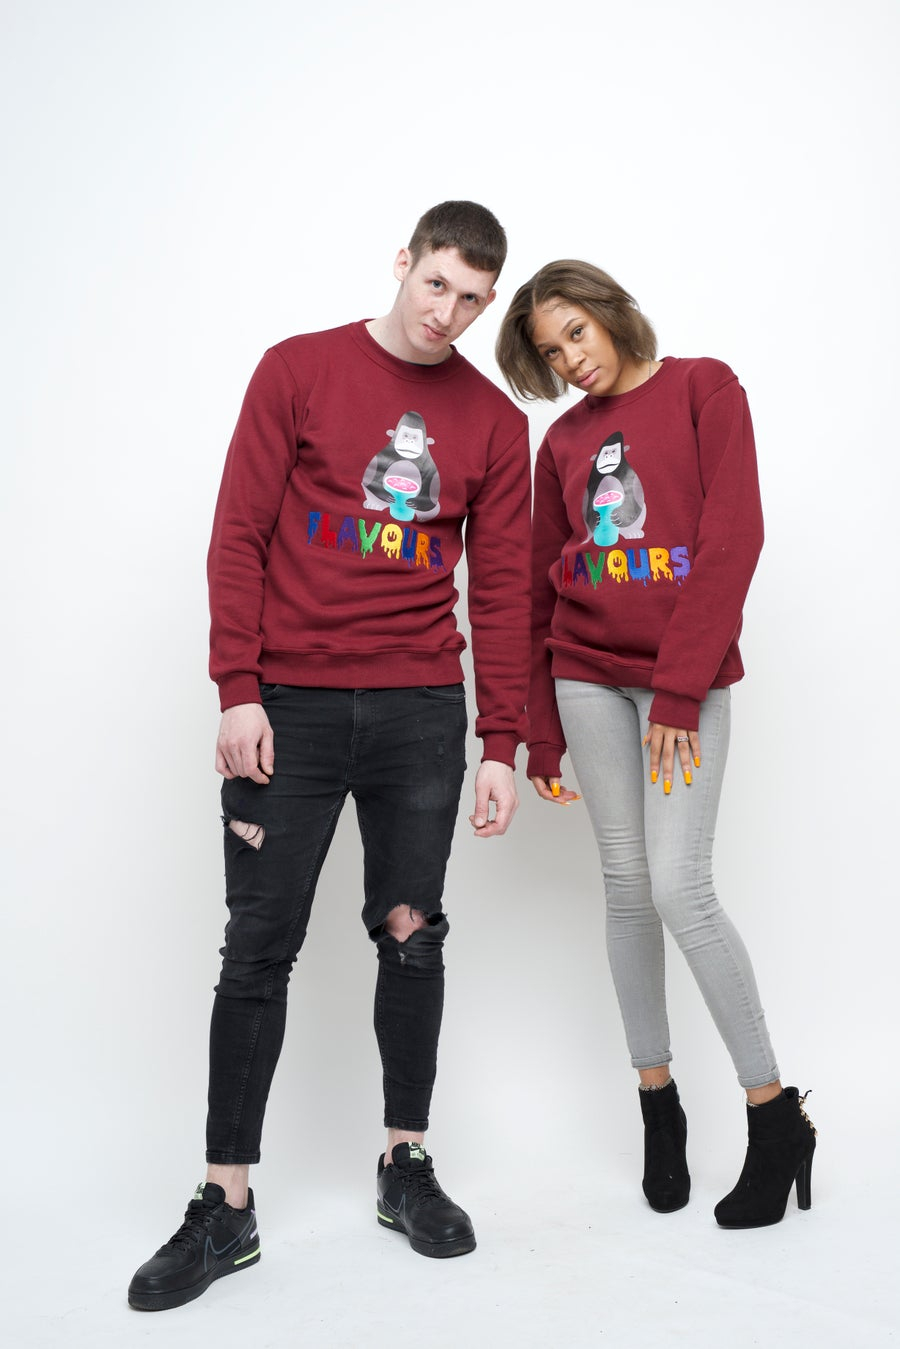 Image of Rich Rich Sweatshirt - Burgundy